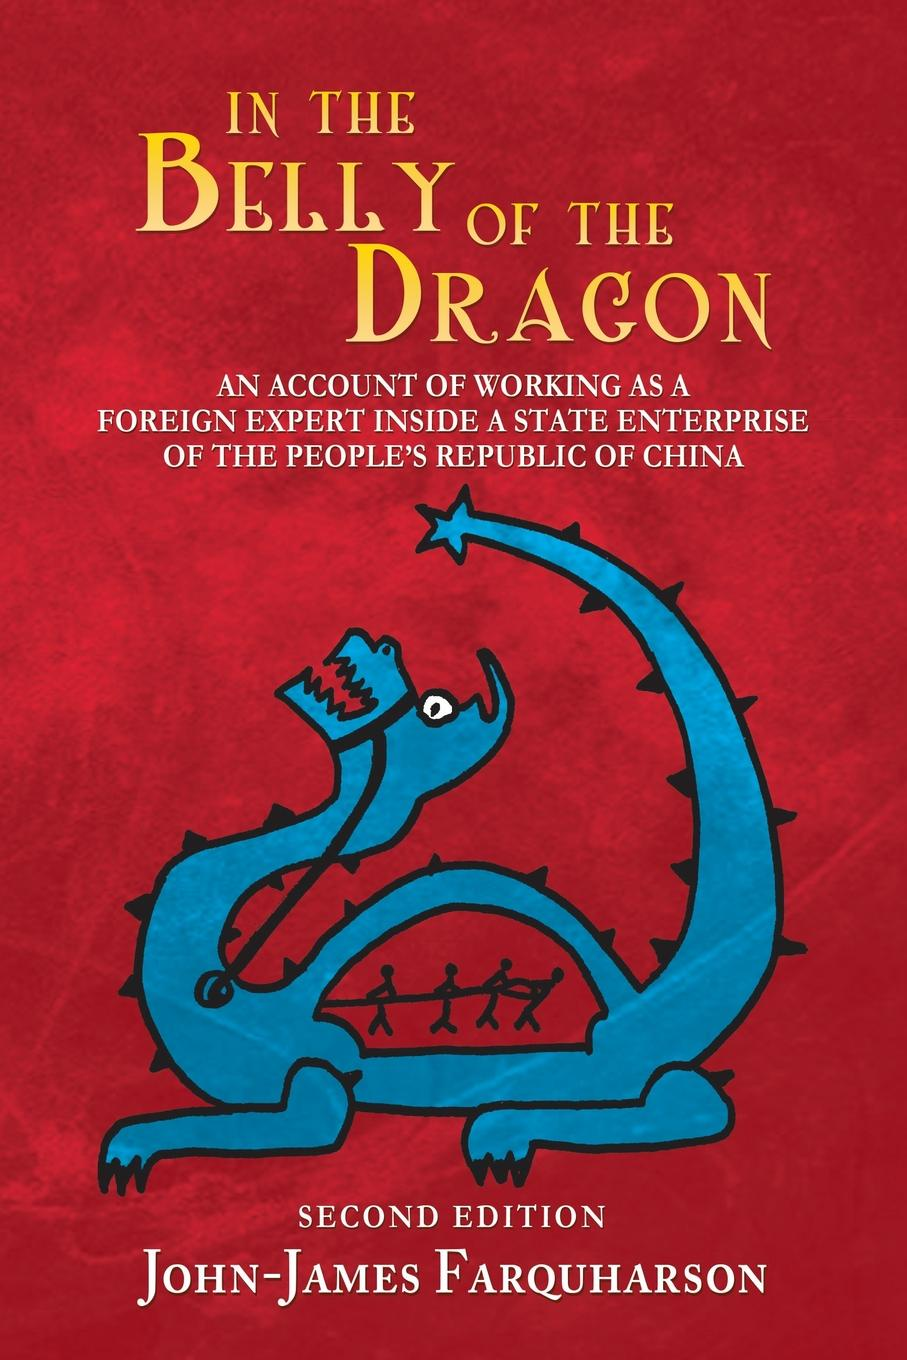 John-James Farquharson In the Belly of the Dragon. An Account of Working as a Foreign Expert Inside a State Enterprise of the People's Republic of China